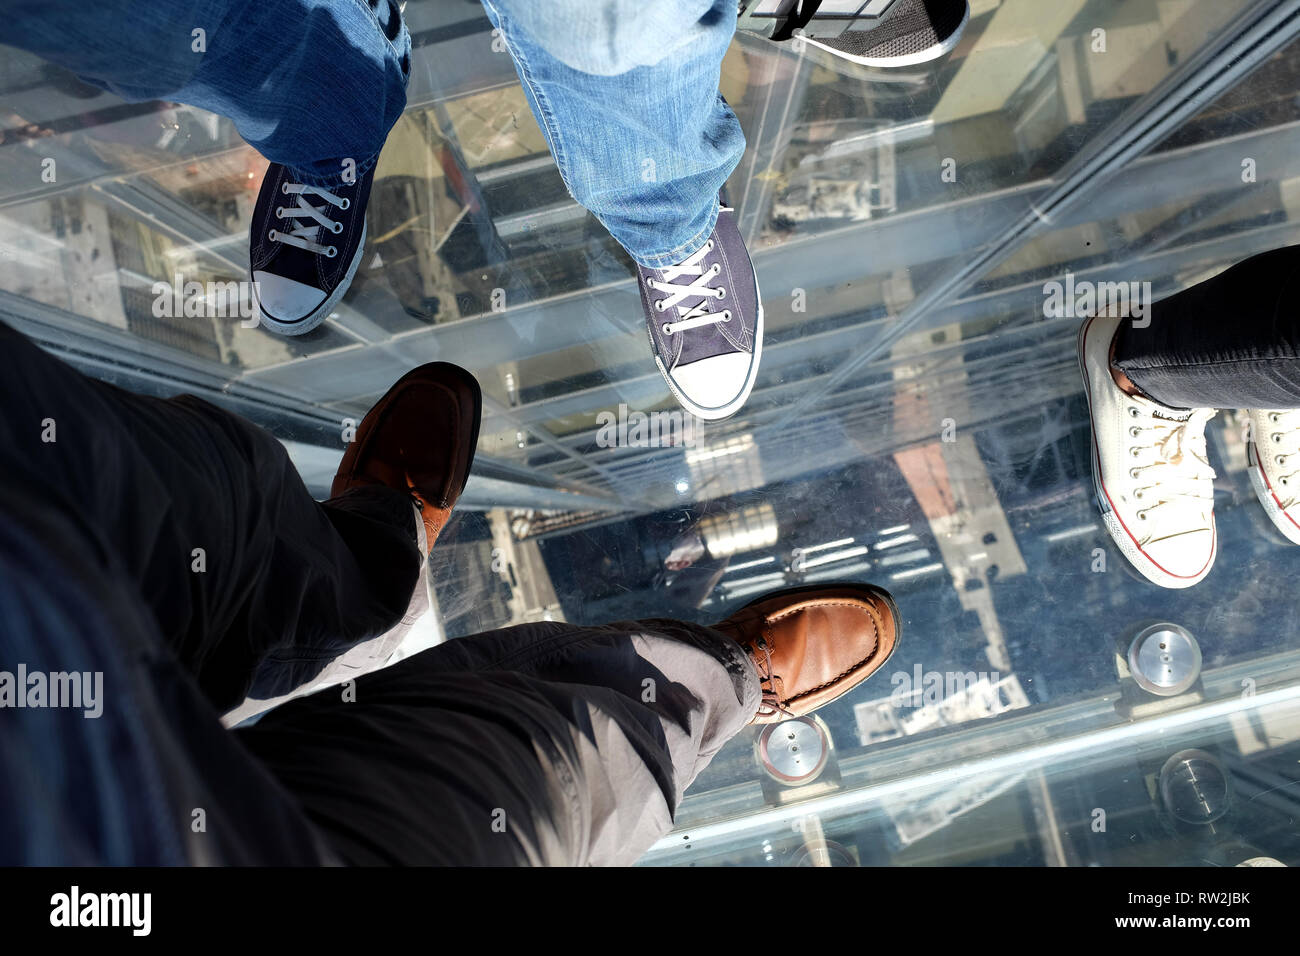 Sears Tower - Stock Image